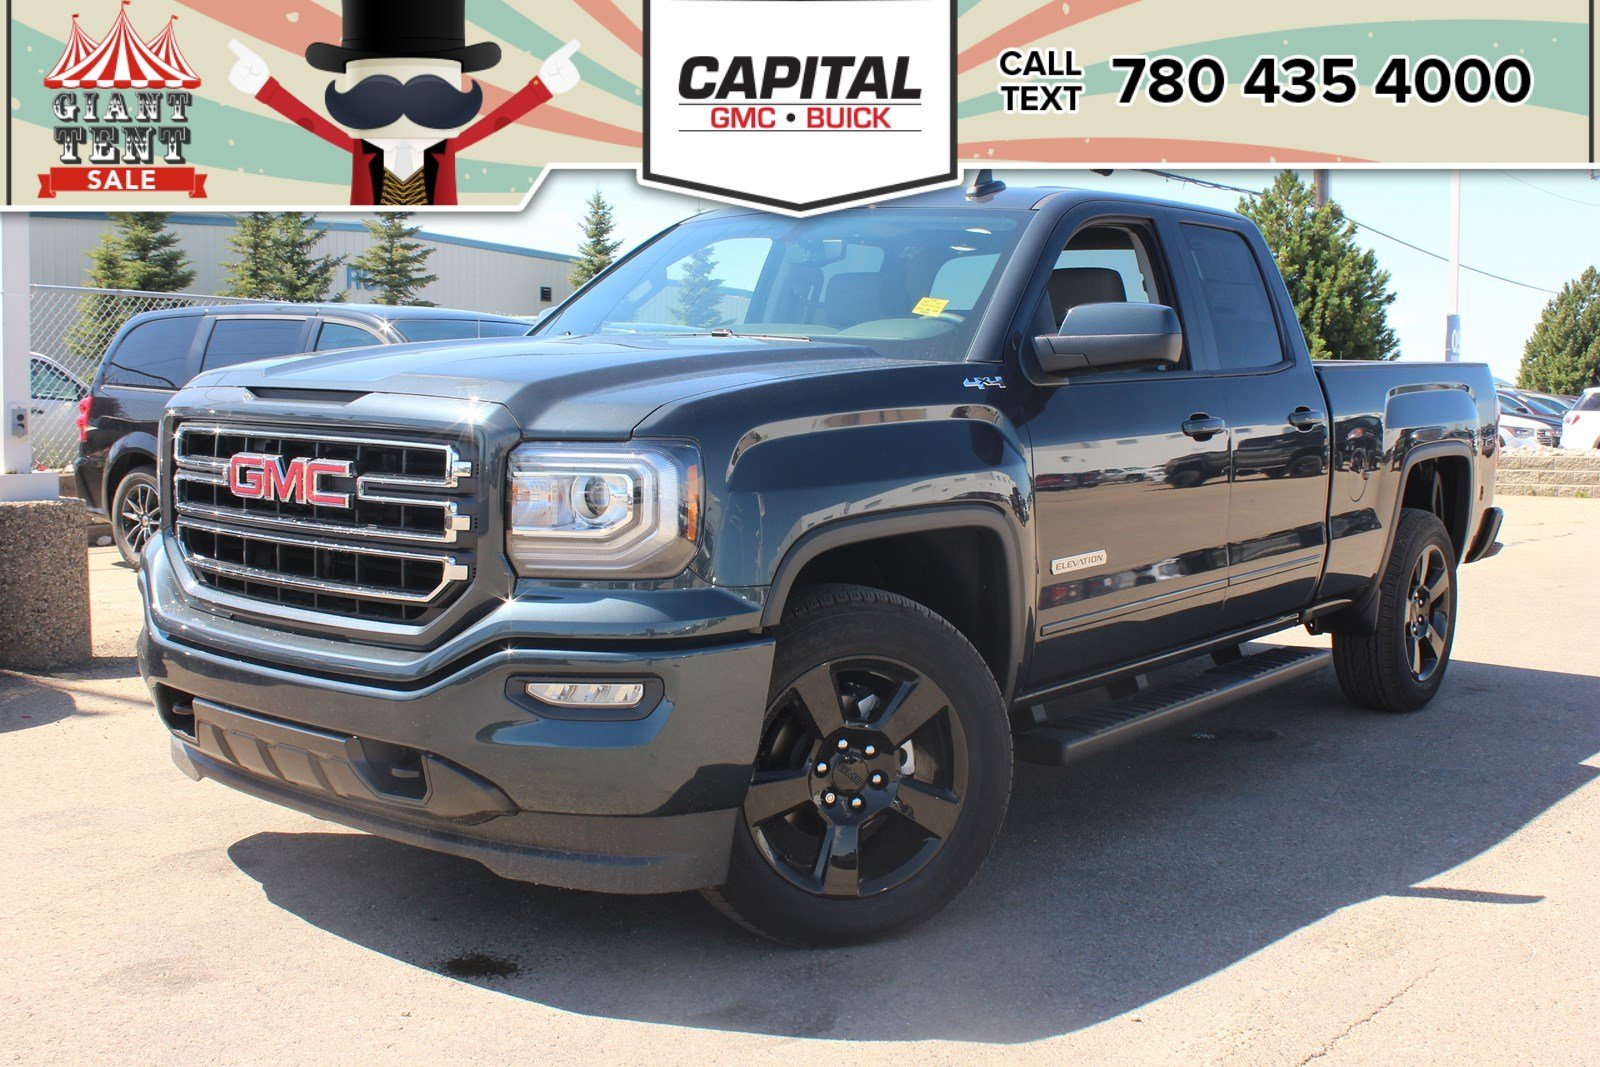 New 2019 GMC Sierra 1500 Limited Double Cab